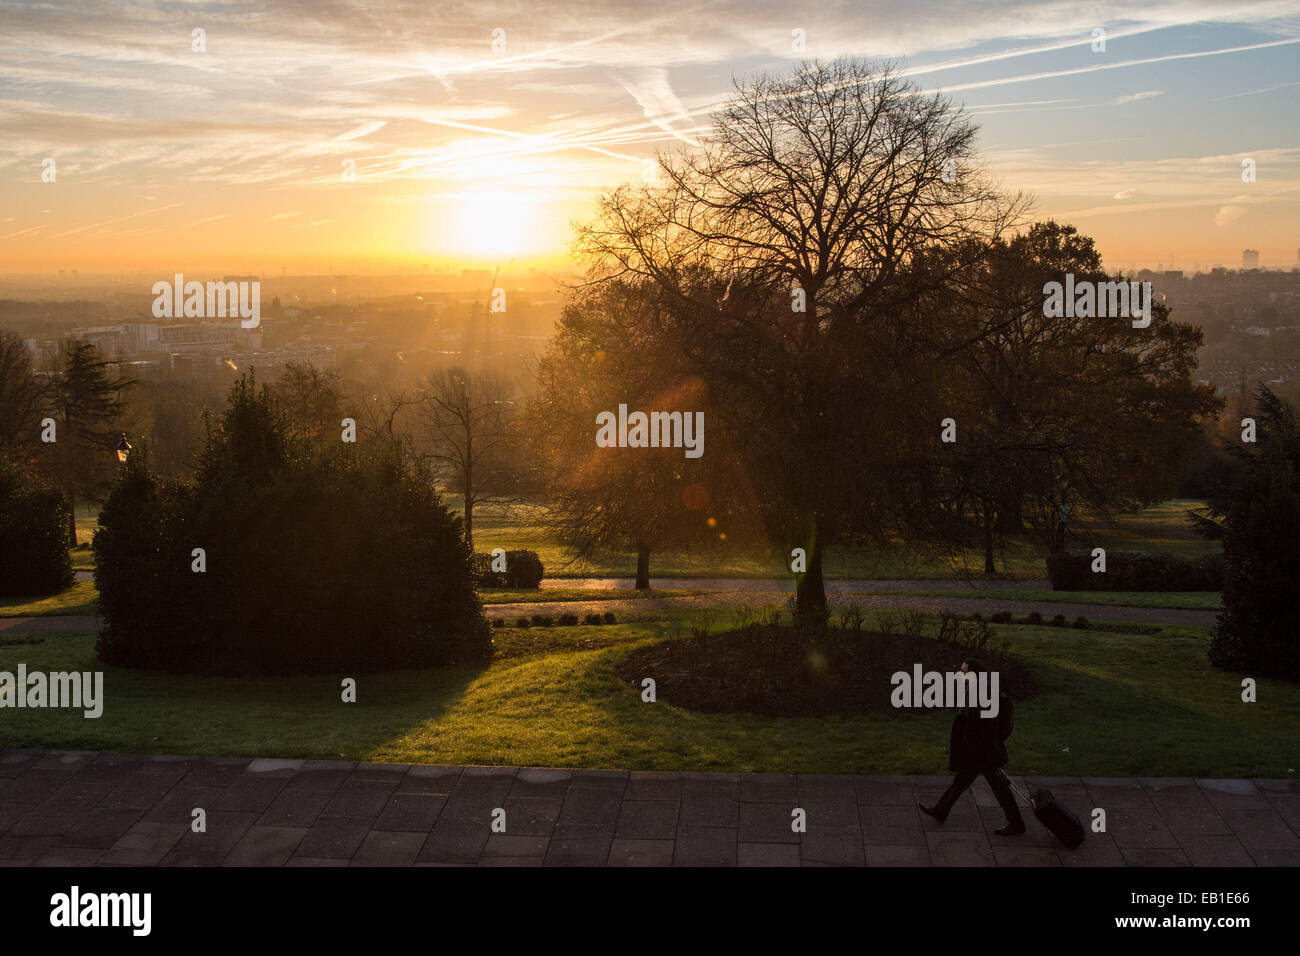 Alexandra Palace Park, London UK, 24th November 2014. The view into central London from Alexandra Palace Park as - Stock Image